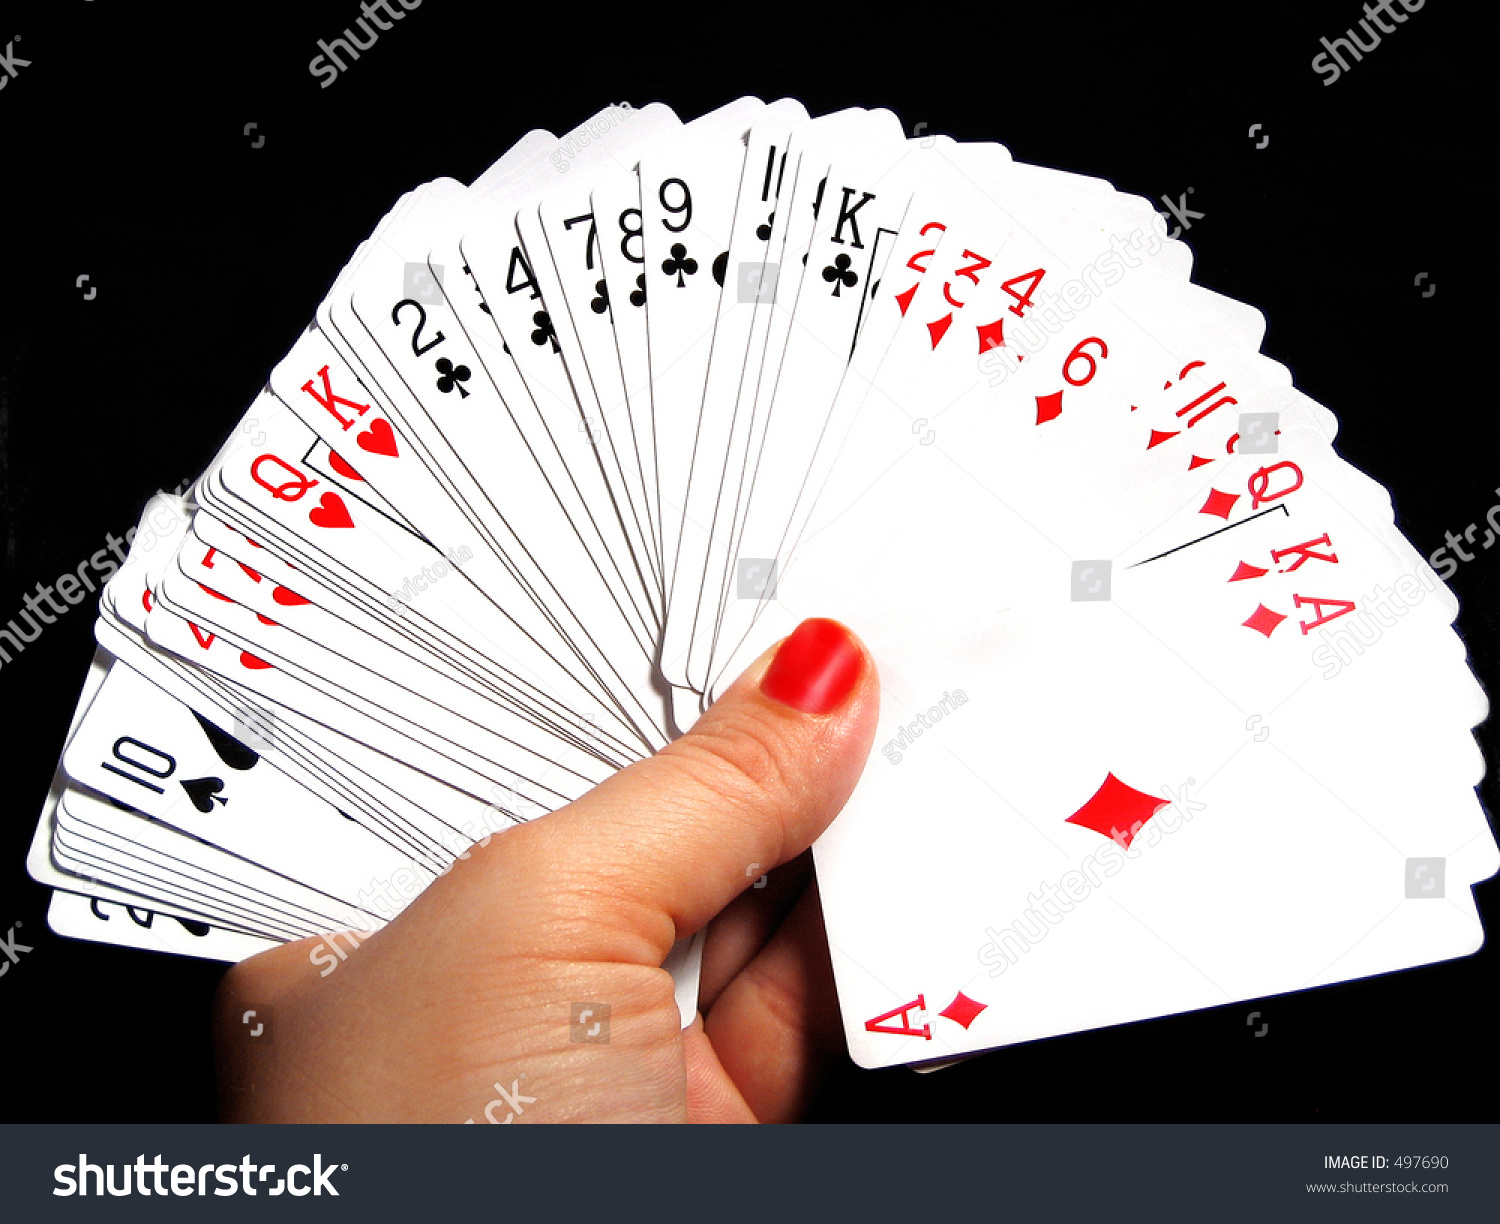 All Cards On One Card - Holding all the cards in one hand